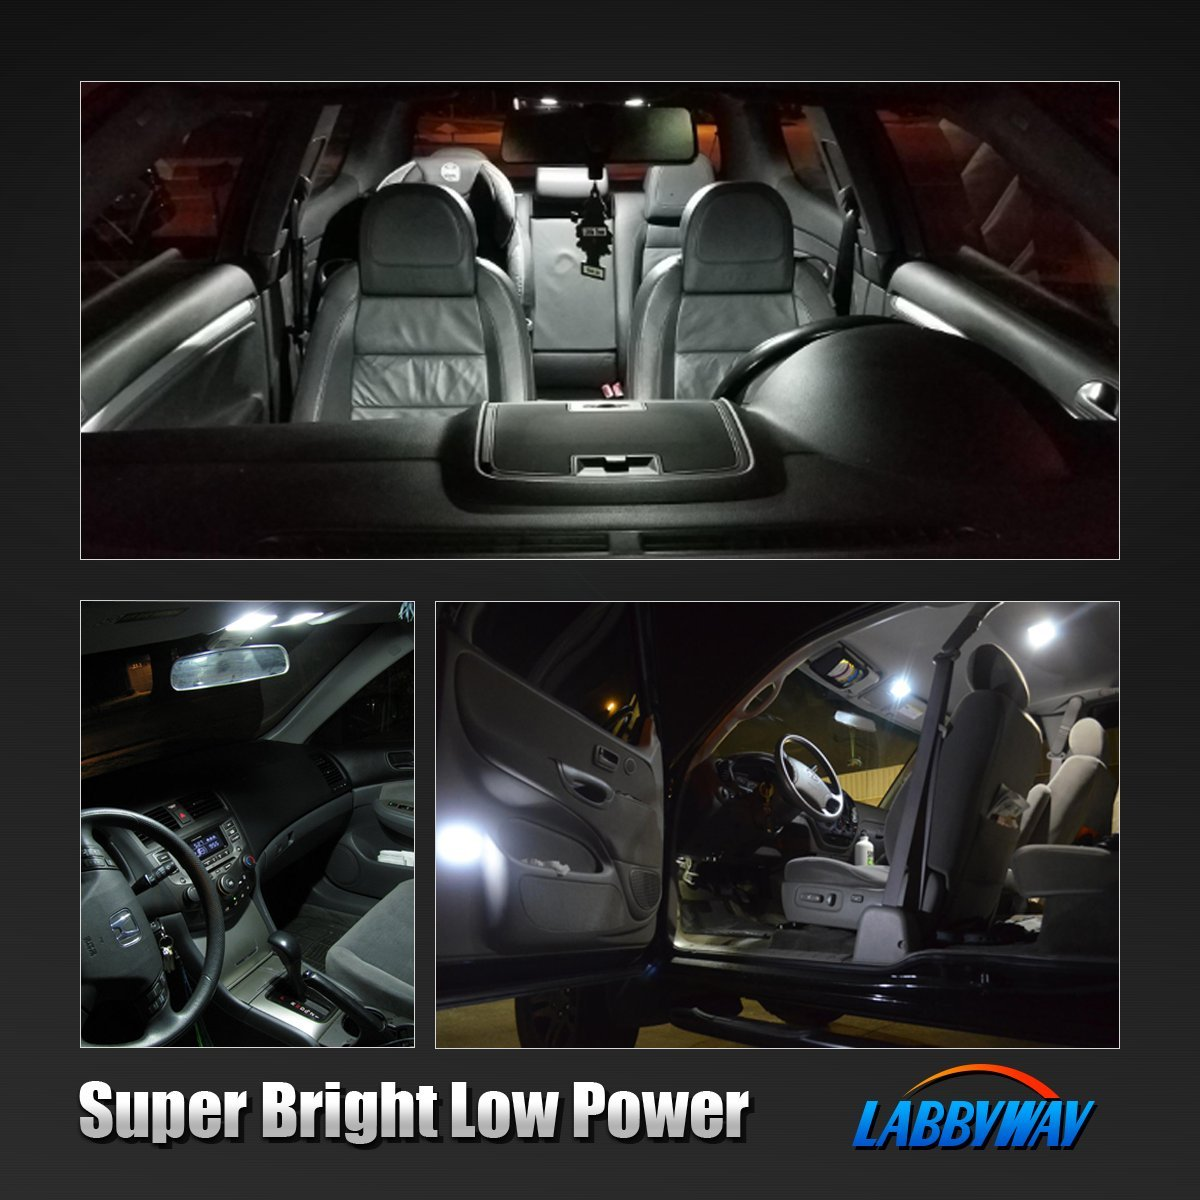 LABBYWAY 20 pcs 194 LED Bulbs Super Bright 6000K White 2835 Chipsets for T10 W5W 2825 168 LED Interior Bulbs for Parking Lights Door Lights License Plate Lights